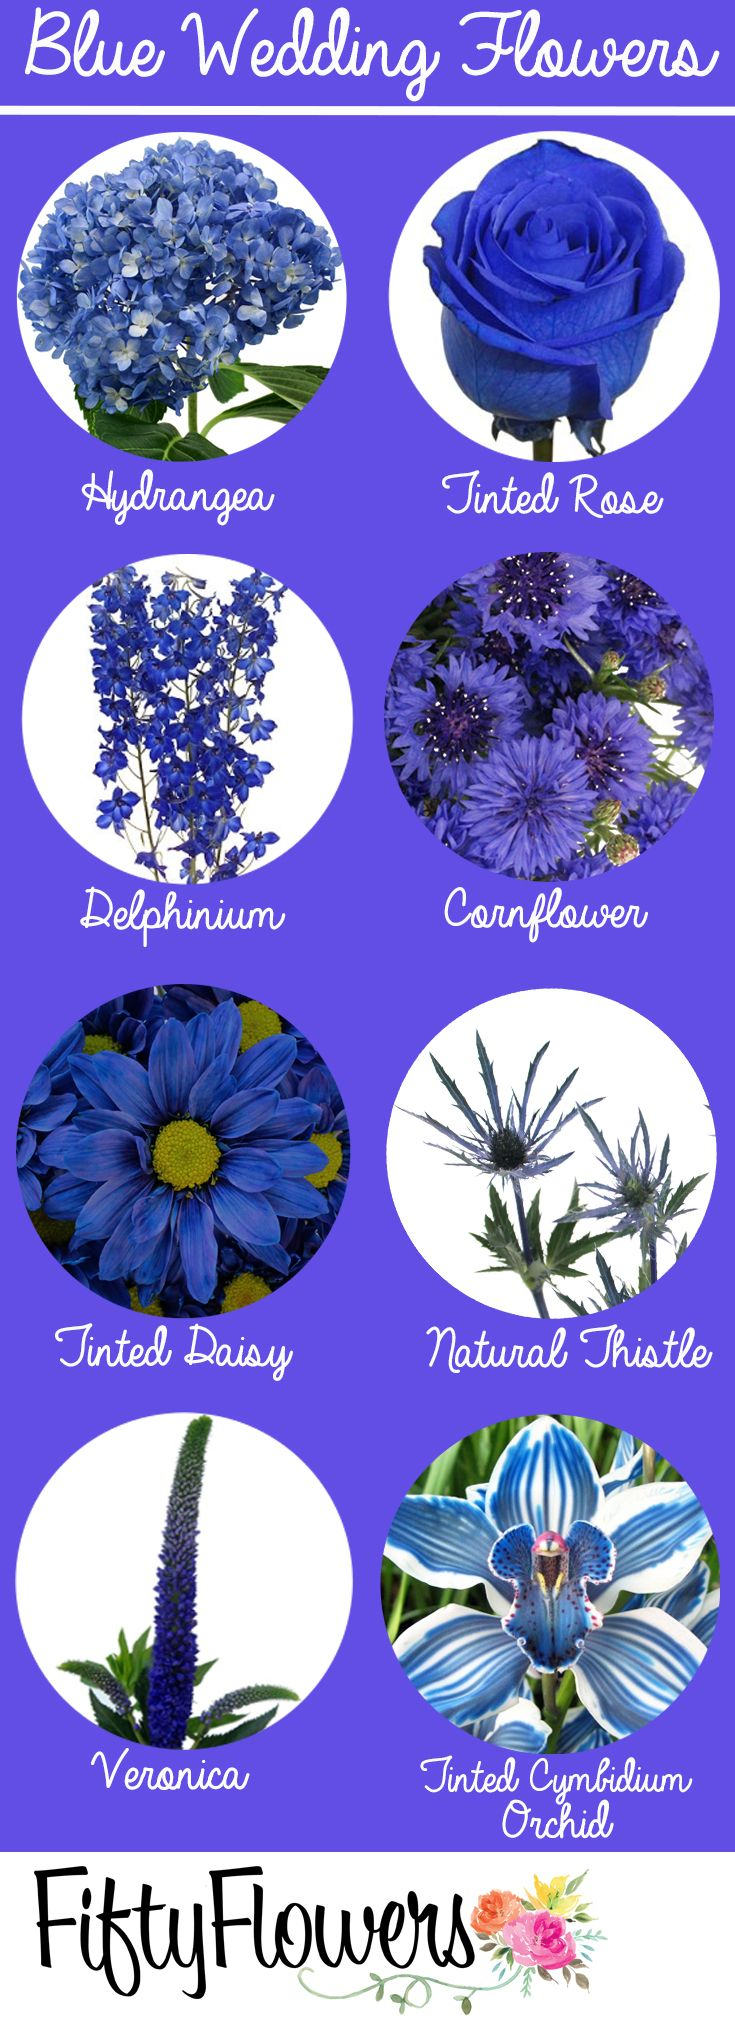 """Find your """"something blue"""" at FiftyFlowers.com!"""